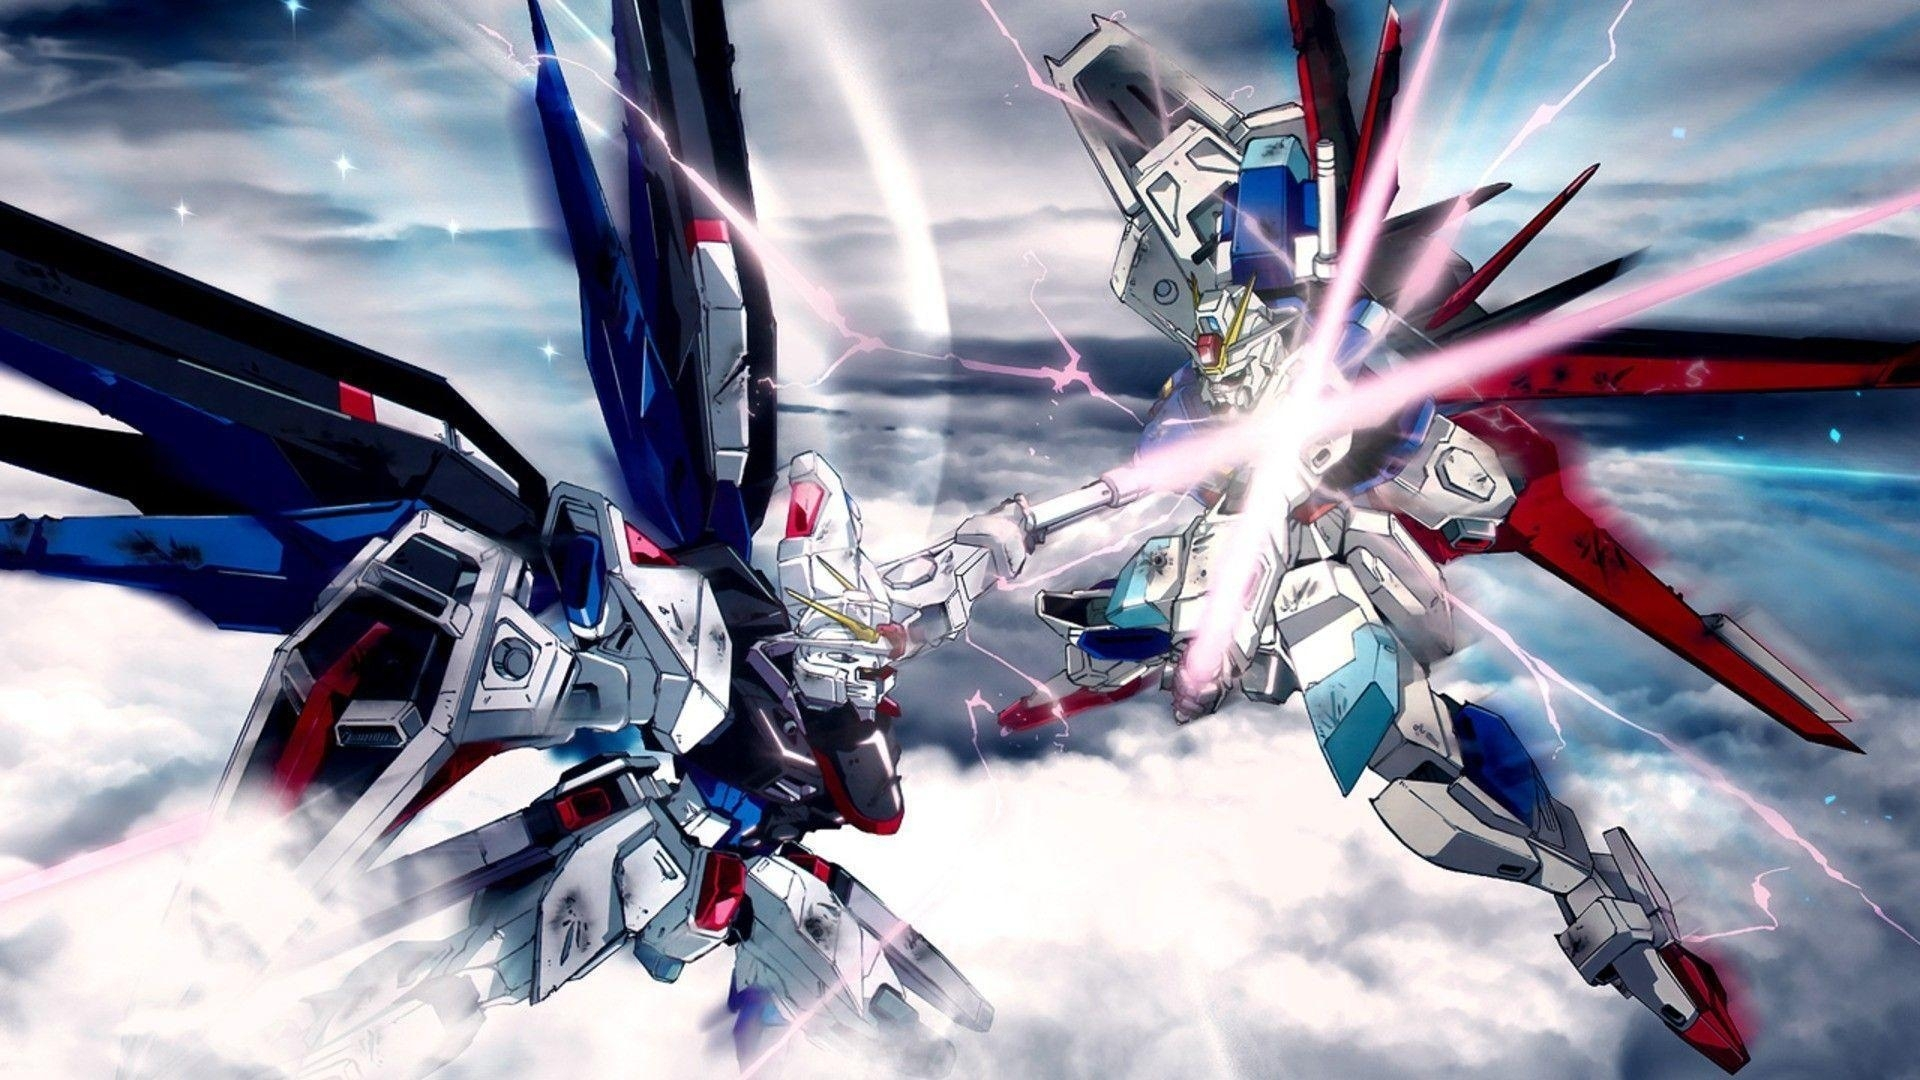 gundam seed wallpapers - wallpaper cave